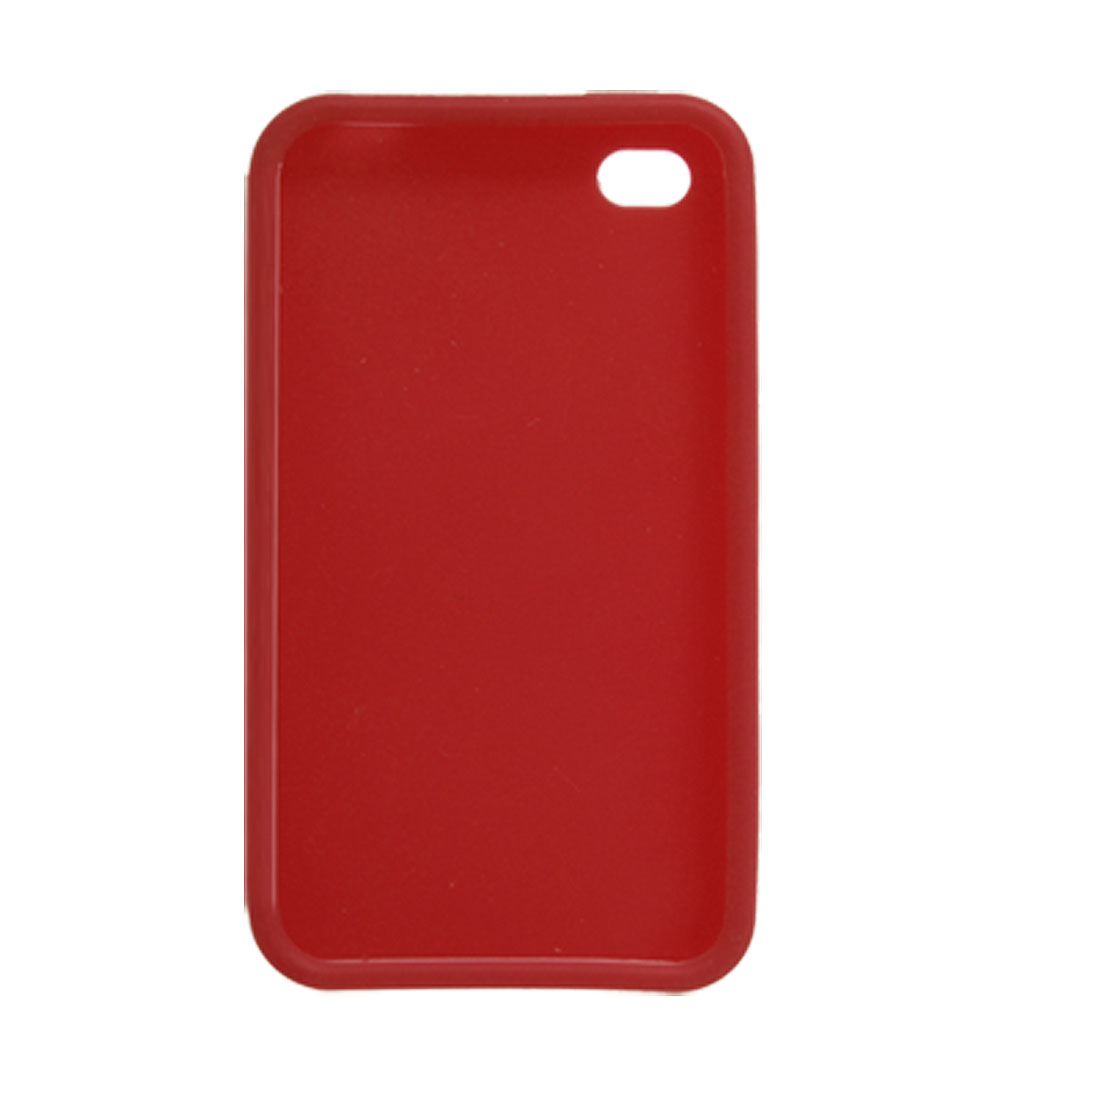 Red Soft Silicone Case Cover Shield for Apple iPhone 4 4G